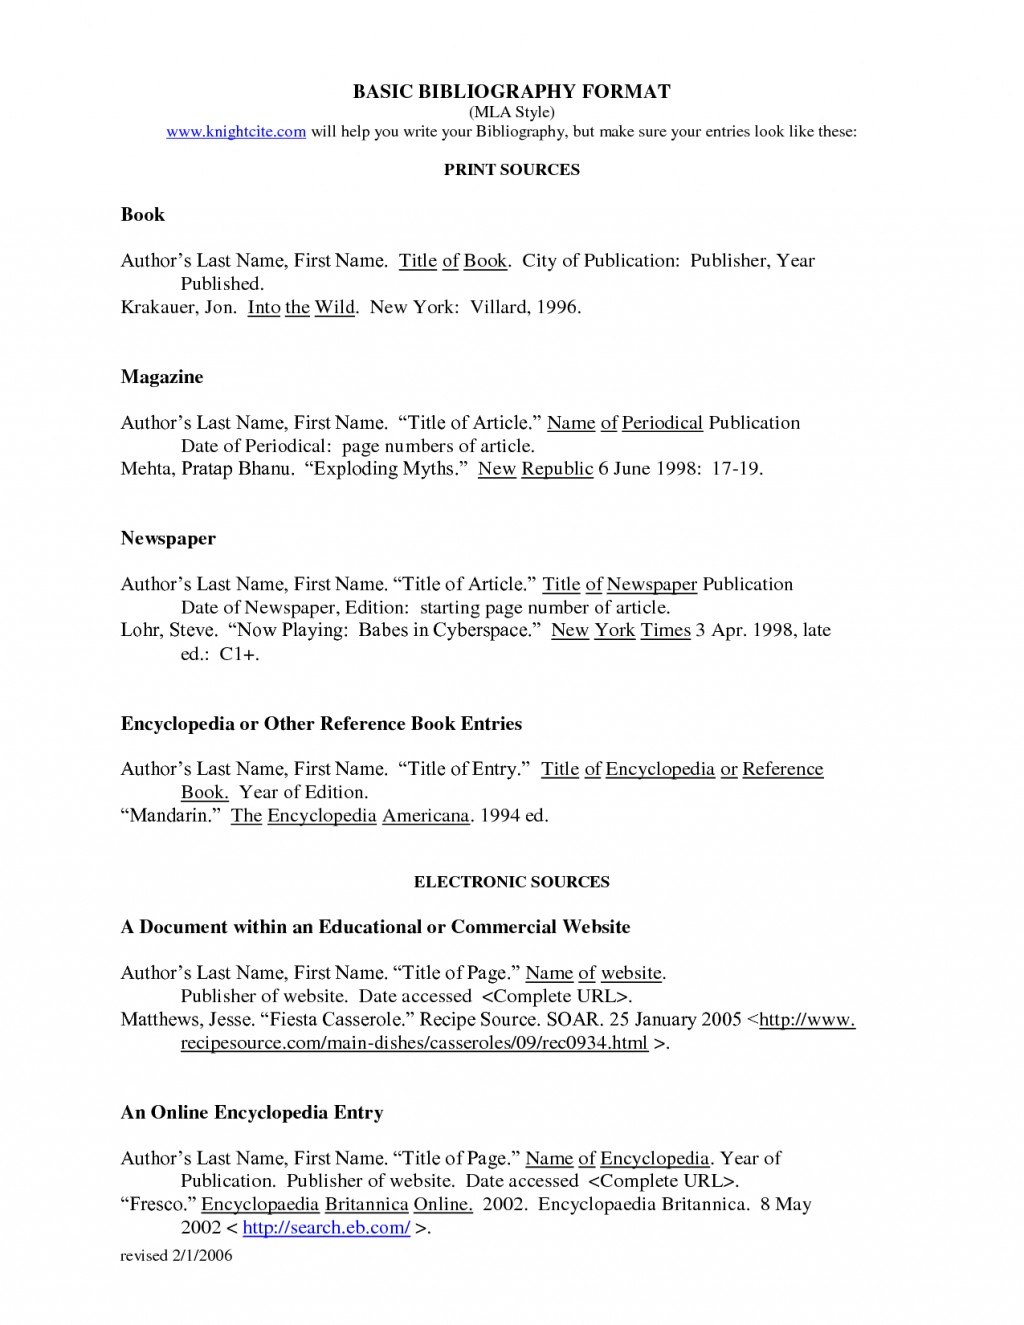 001 Research Paper Work Cited Page Excellent For Bibliography Citation Large